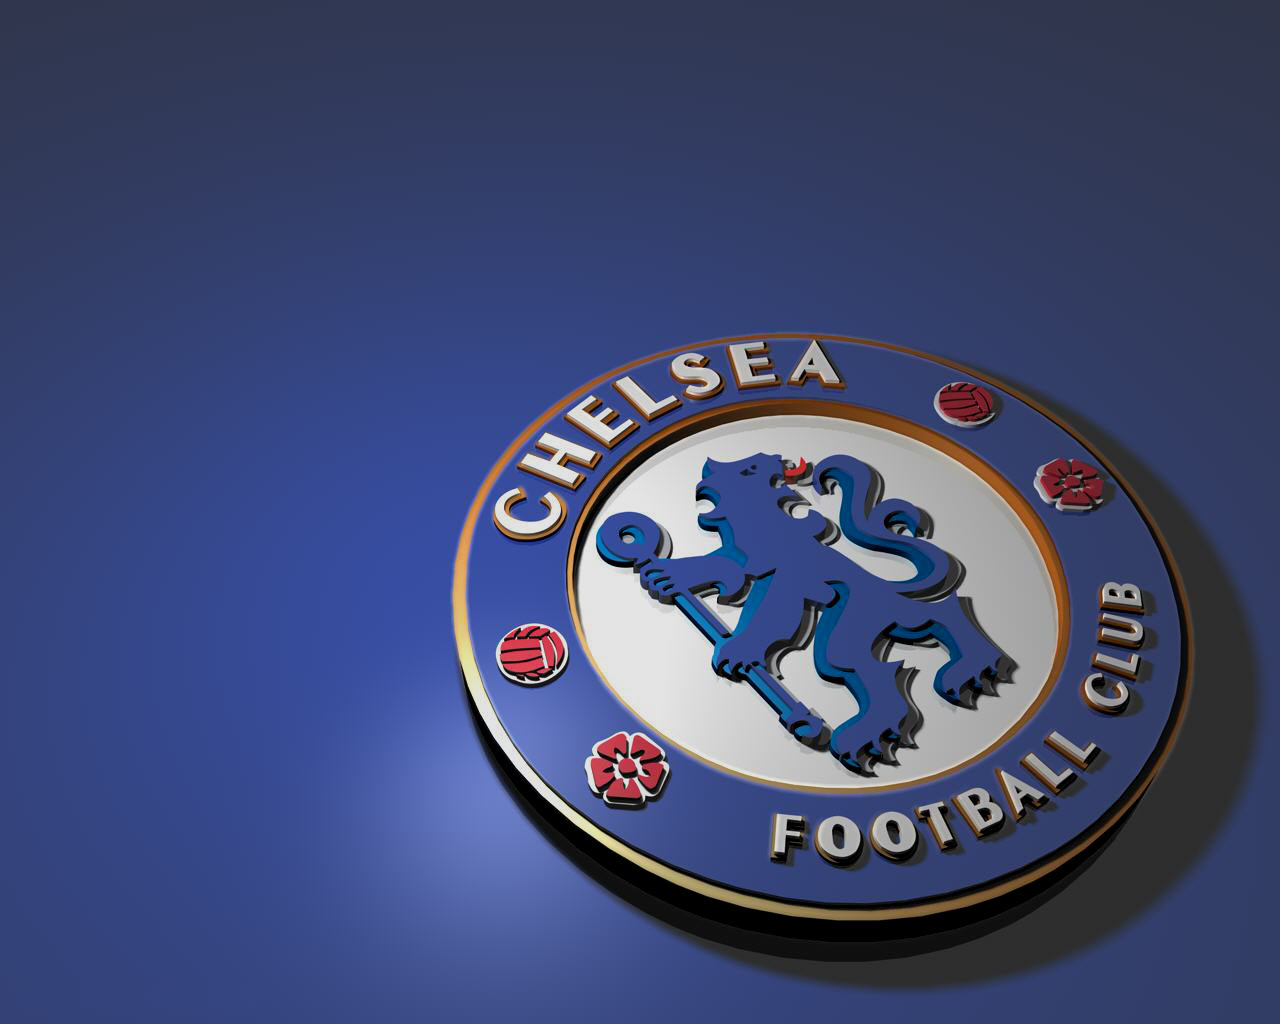 Download Free Chelsea Wallpapers For Your Mobile Phone Most 1280x1024